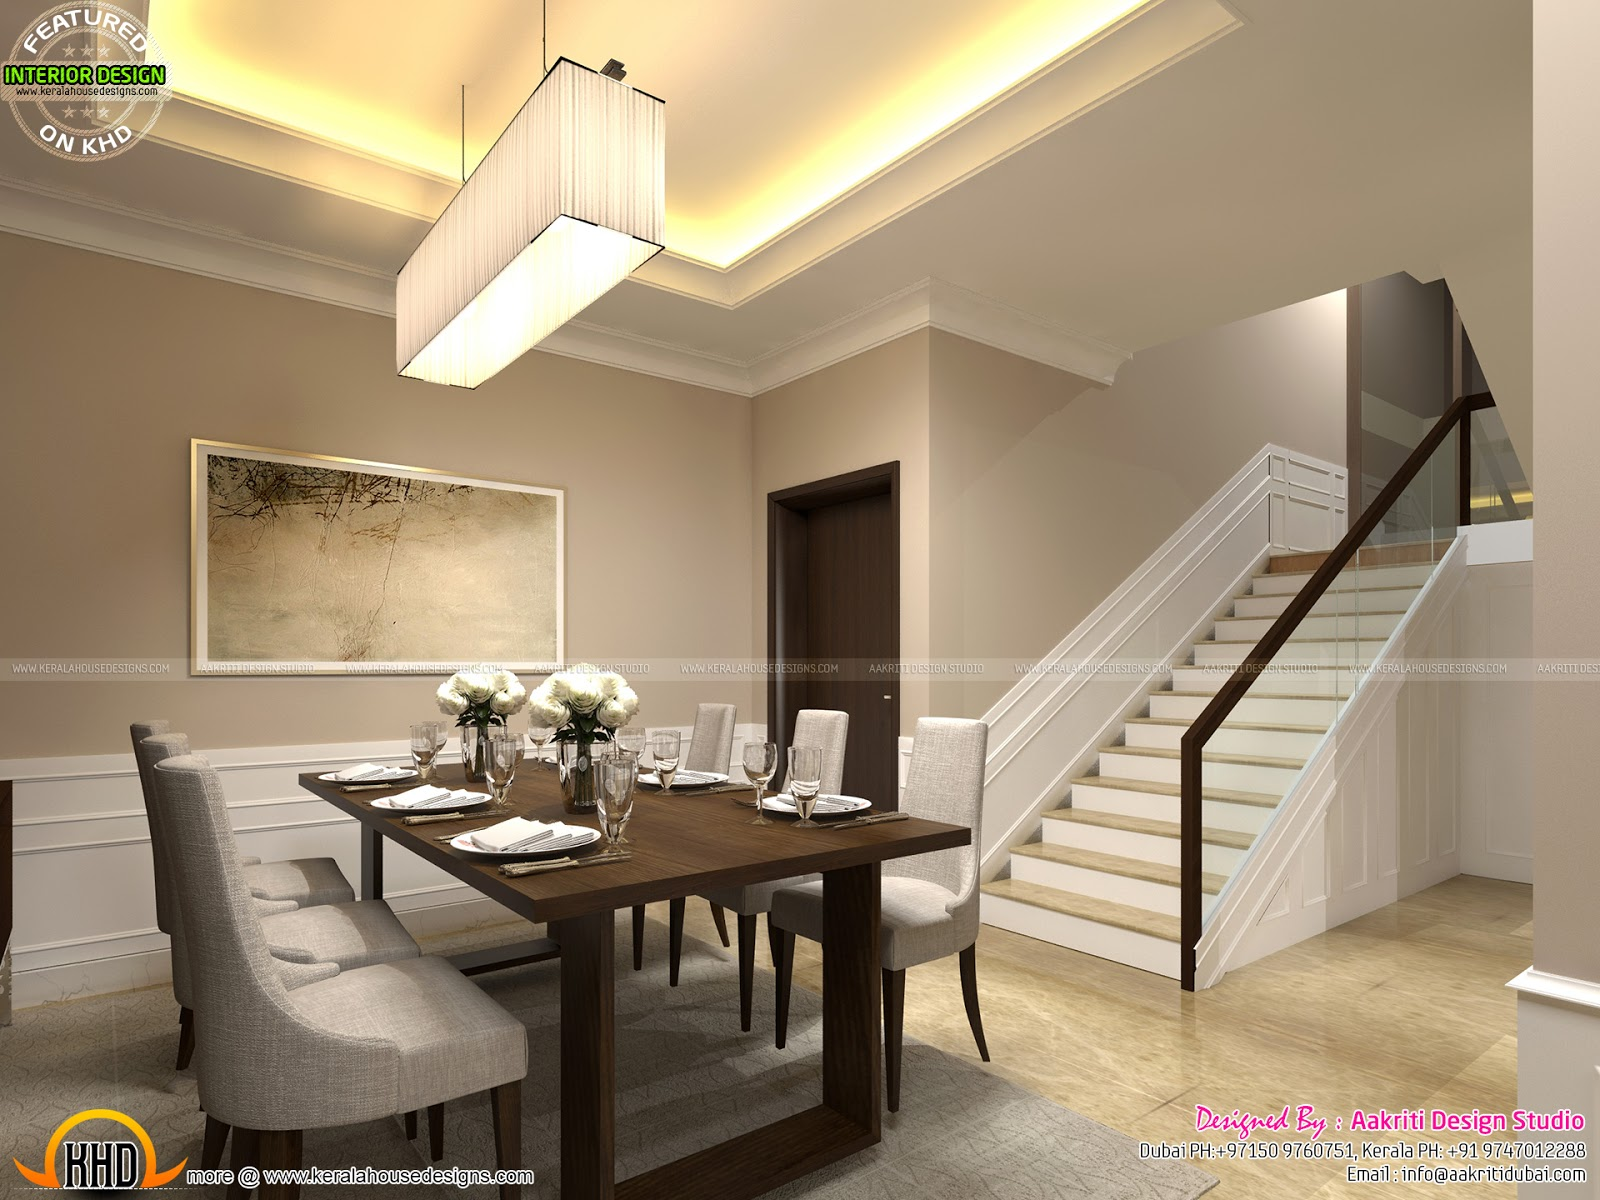 Classic Style Interior Design For Living Room Stair Area And Dining Kerala Home Design And